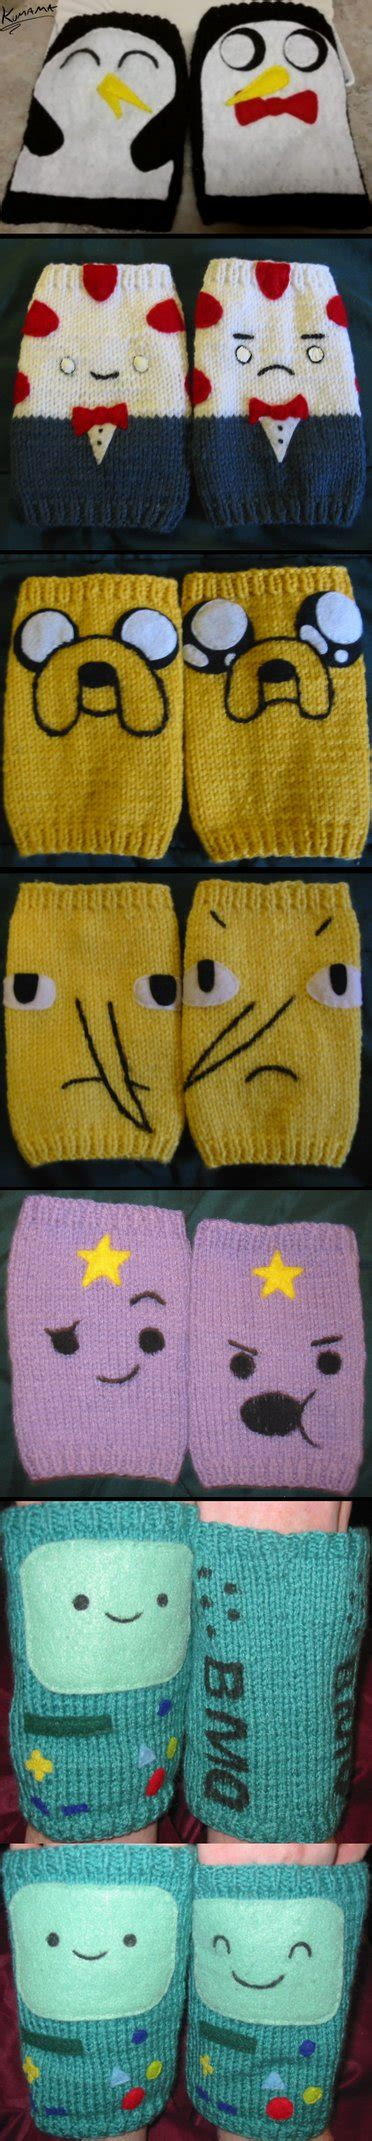 adventure time knitting patterns knitting adventure time by kumama on deviantart